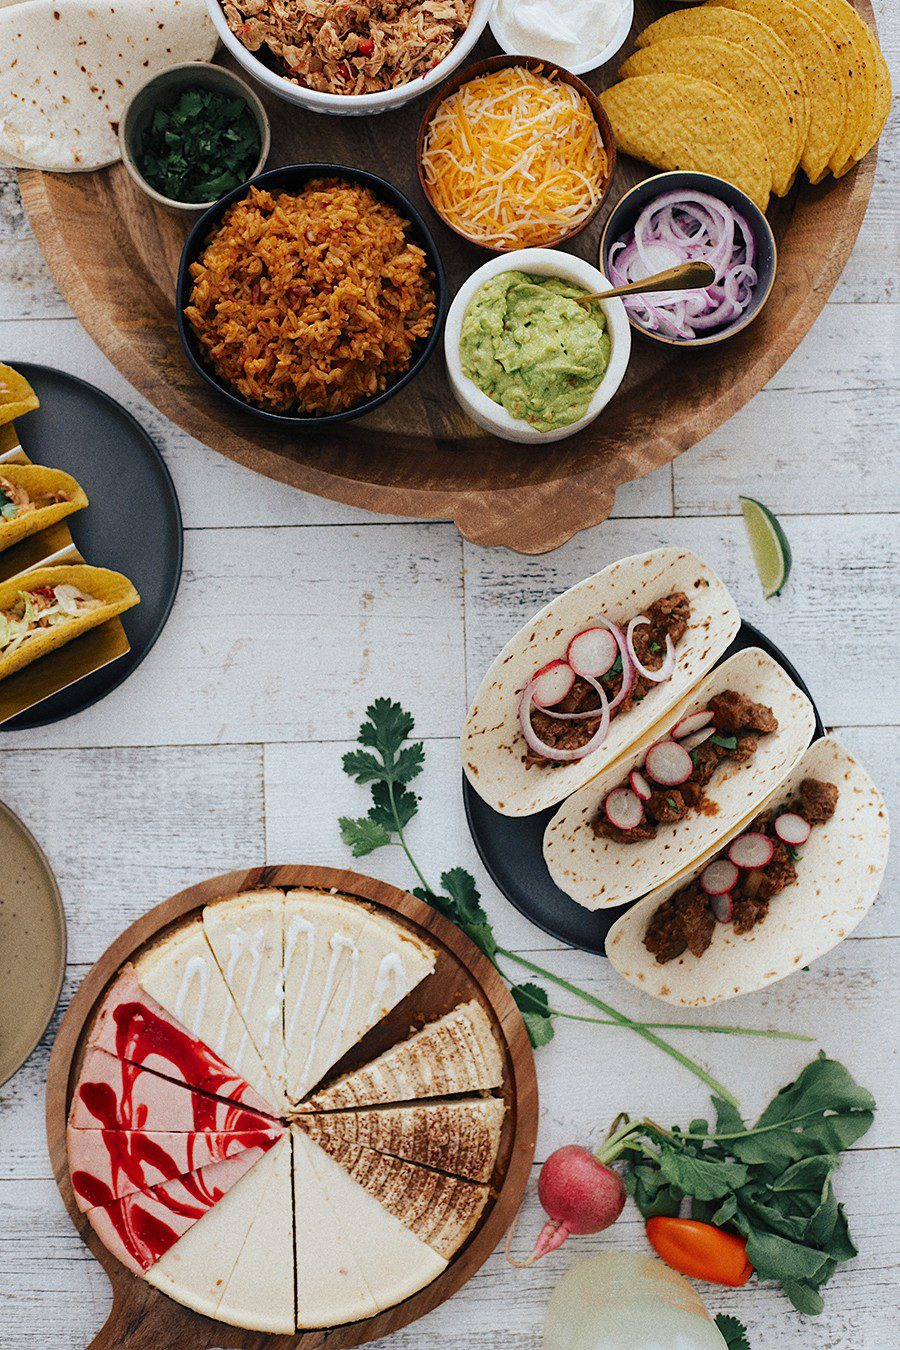 Easy Weeknight Crockpot Meals: Slow Cooker Barbacoa Beef Tacos   Omaha Steaks by popular Florida lifestyle blog, Fresh Mommy Blog: image of barbacoa beef tacos, sliced cheesecake, guacamole, red onions, grated cheese, hard taco shells, sour cream, black olives, and tortillas.